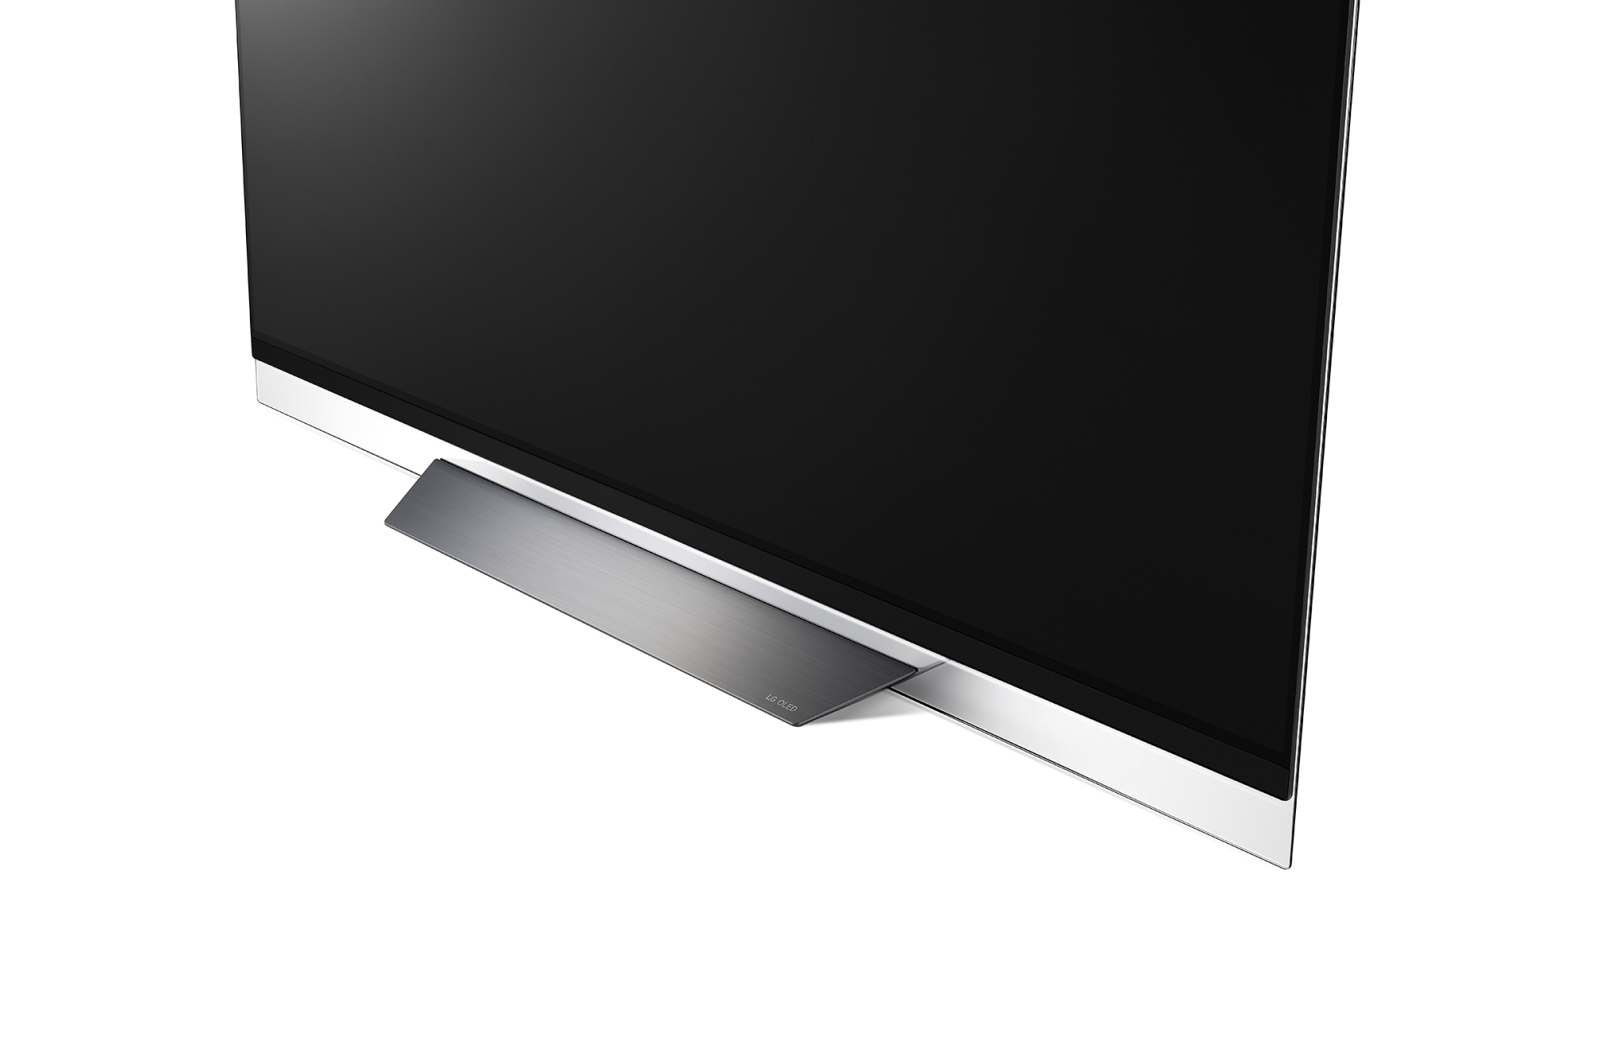 LG OLED E8 Owners and Discussion Thread | AVForums